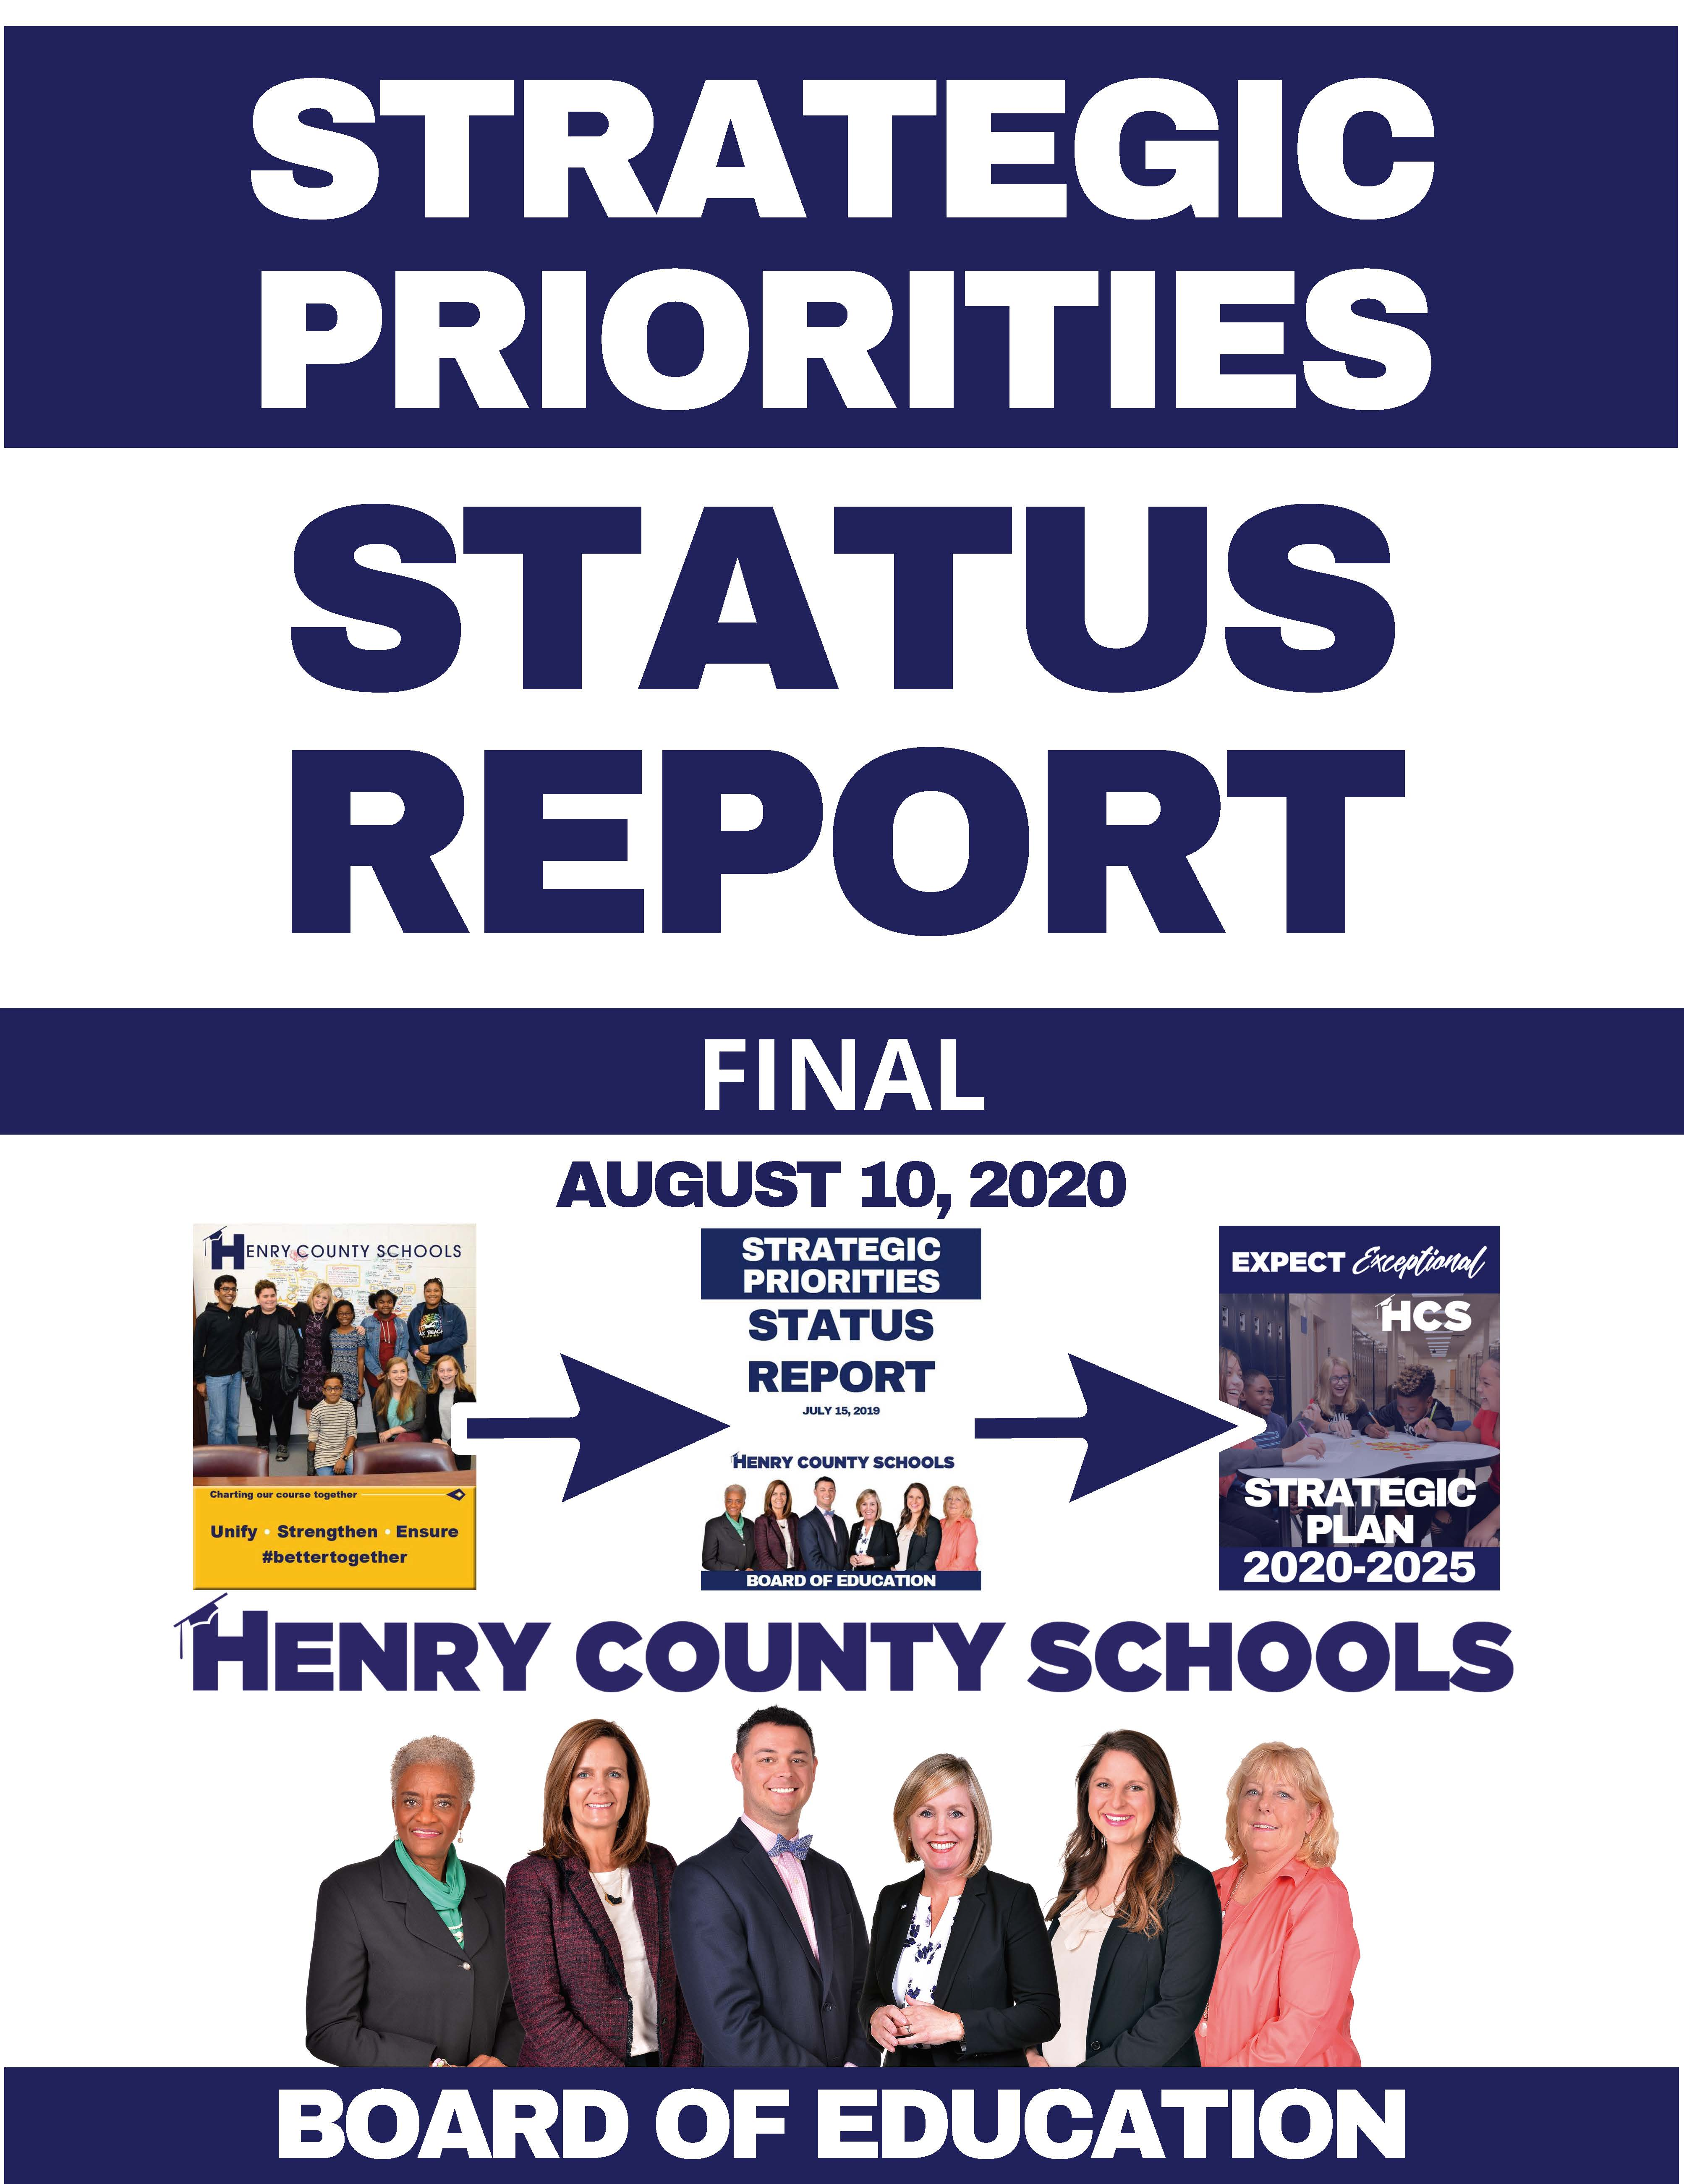 Strategic Priorities Status Report